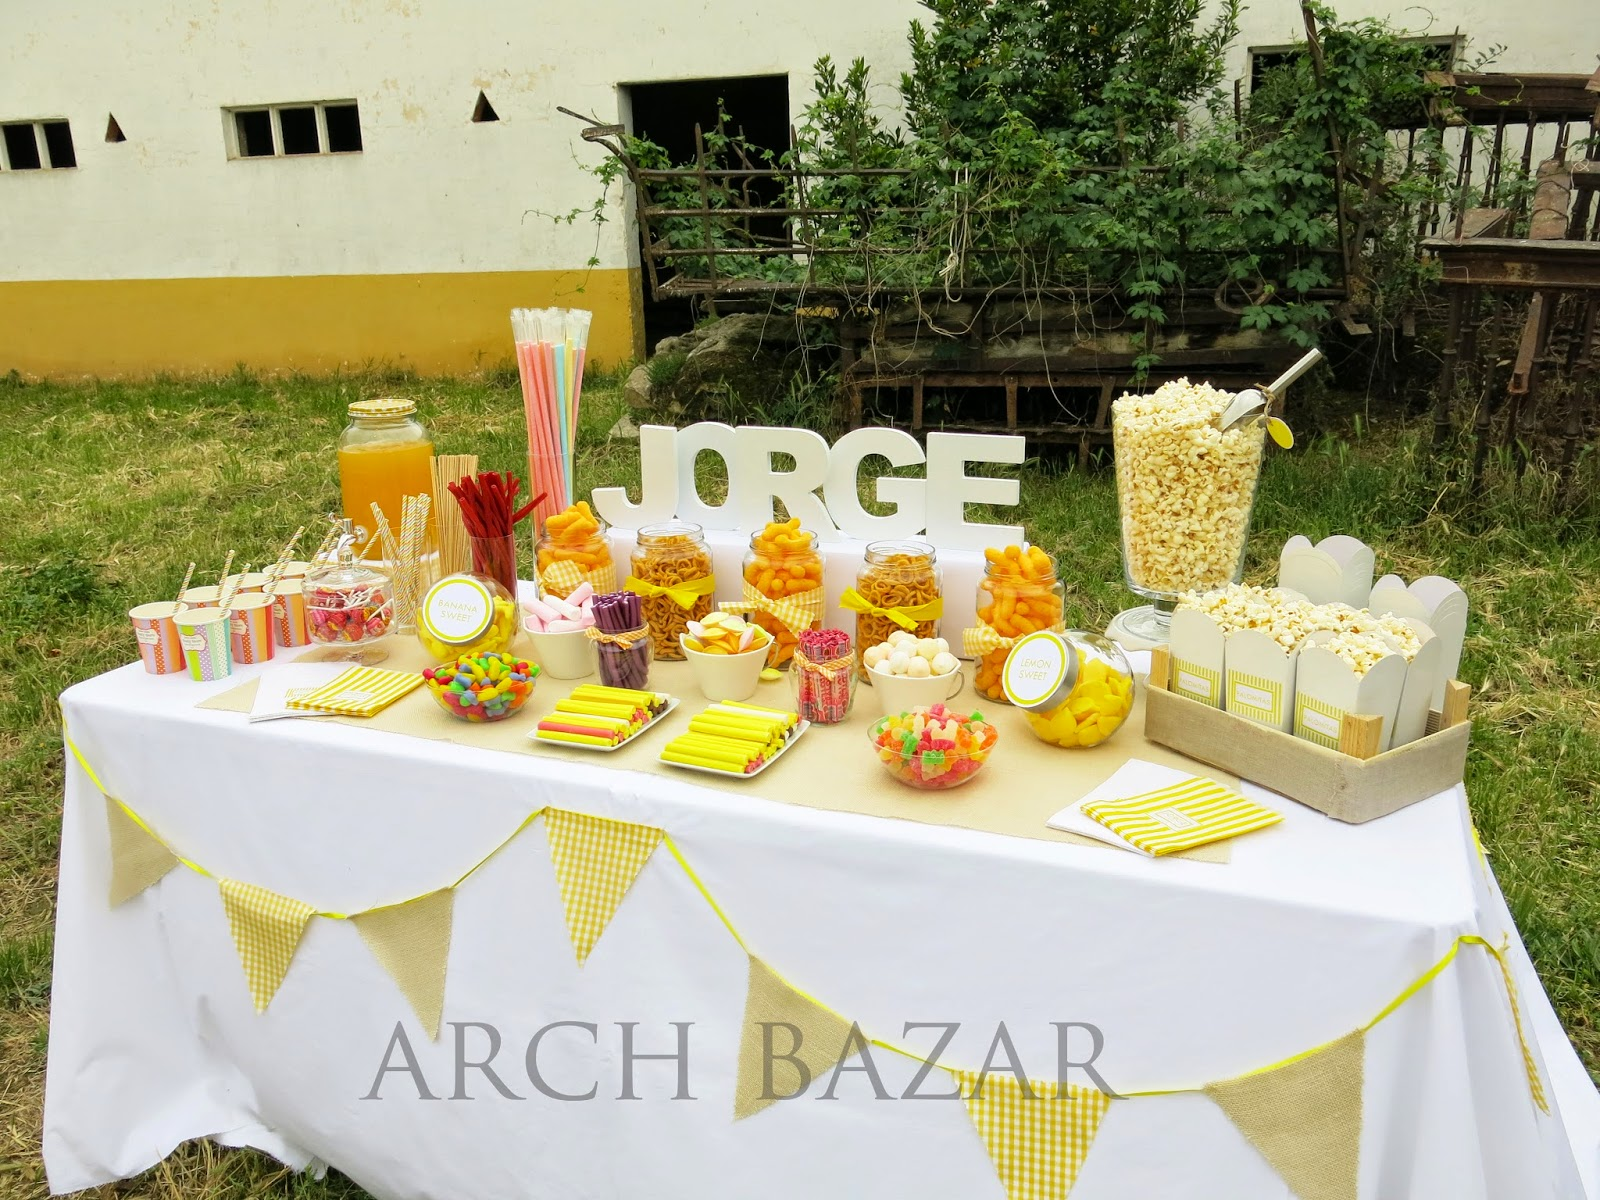 Arch bazar candy bar party deco donostia san sebasti n - Como hacer un candy bar ...